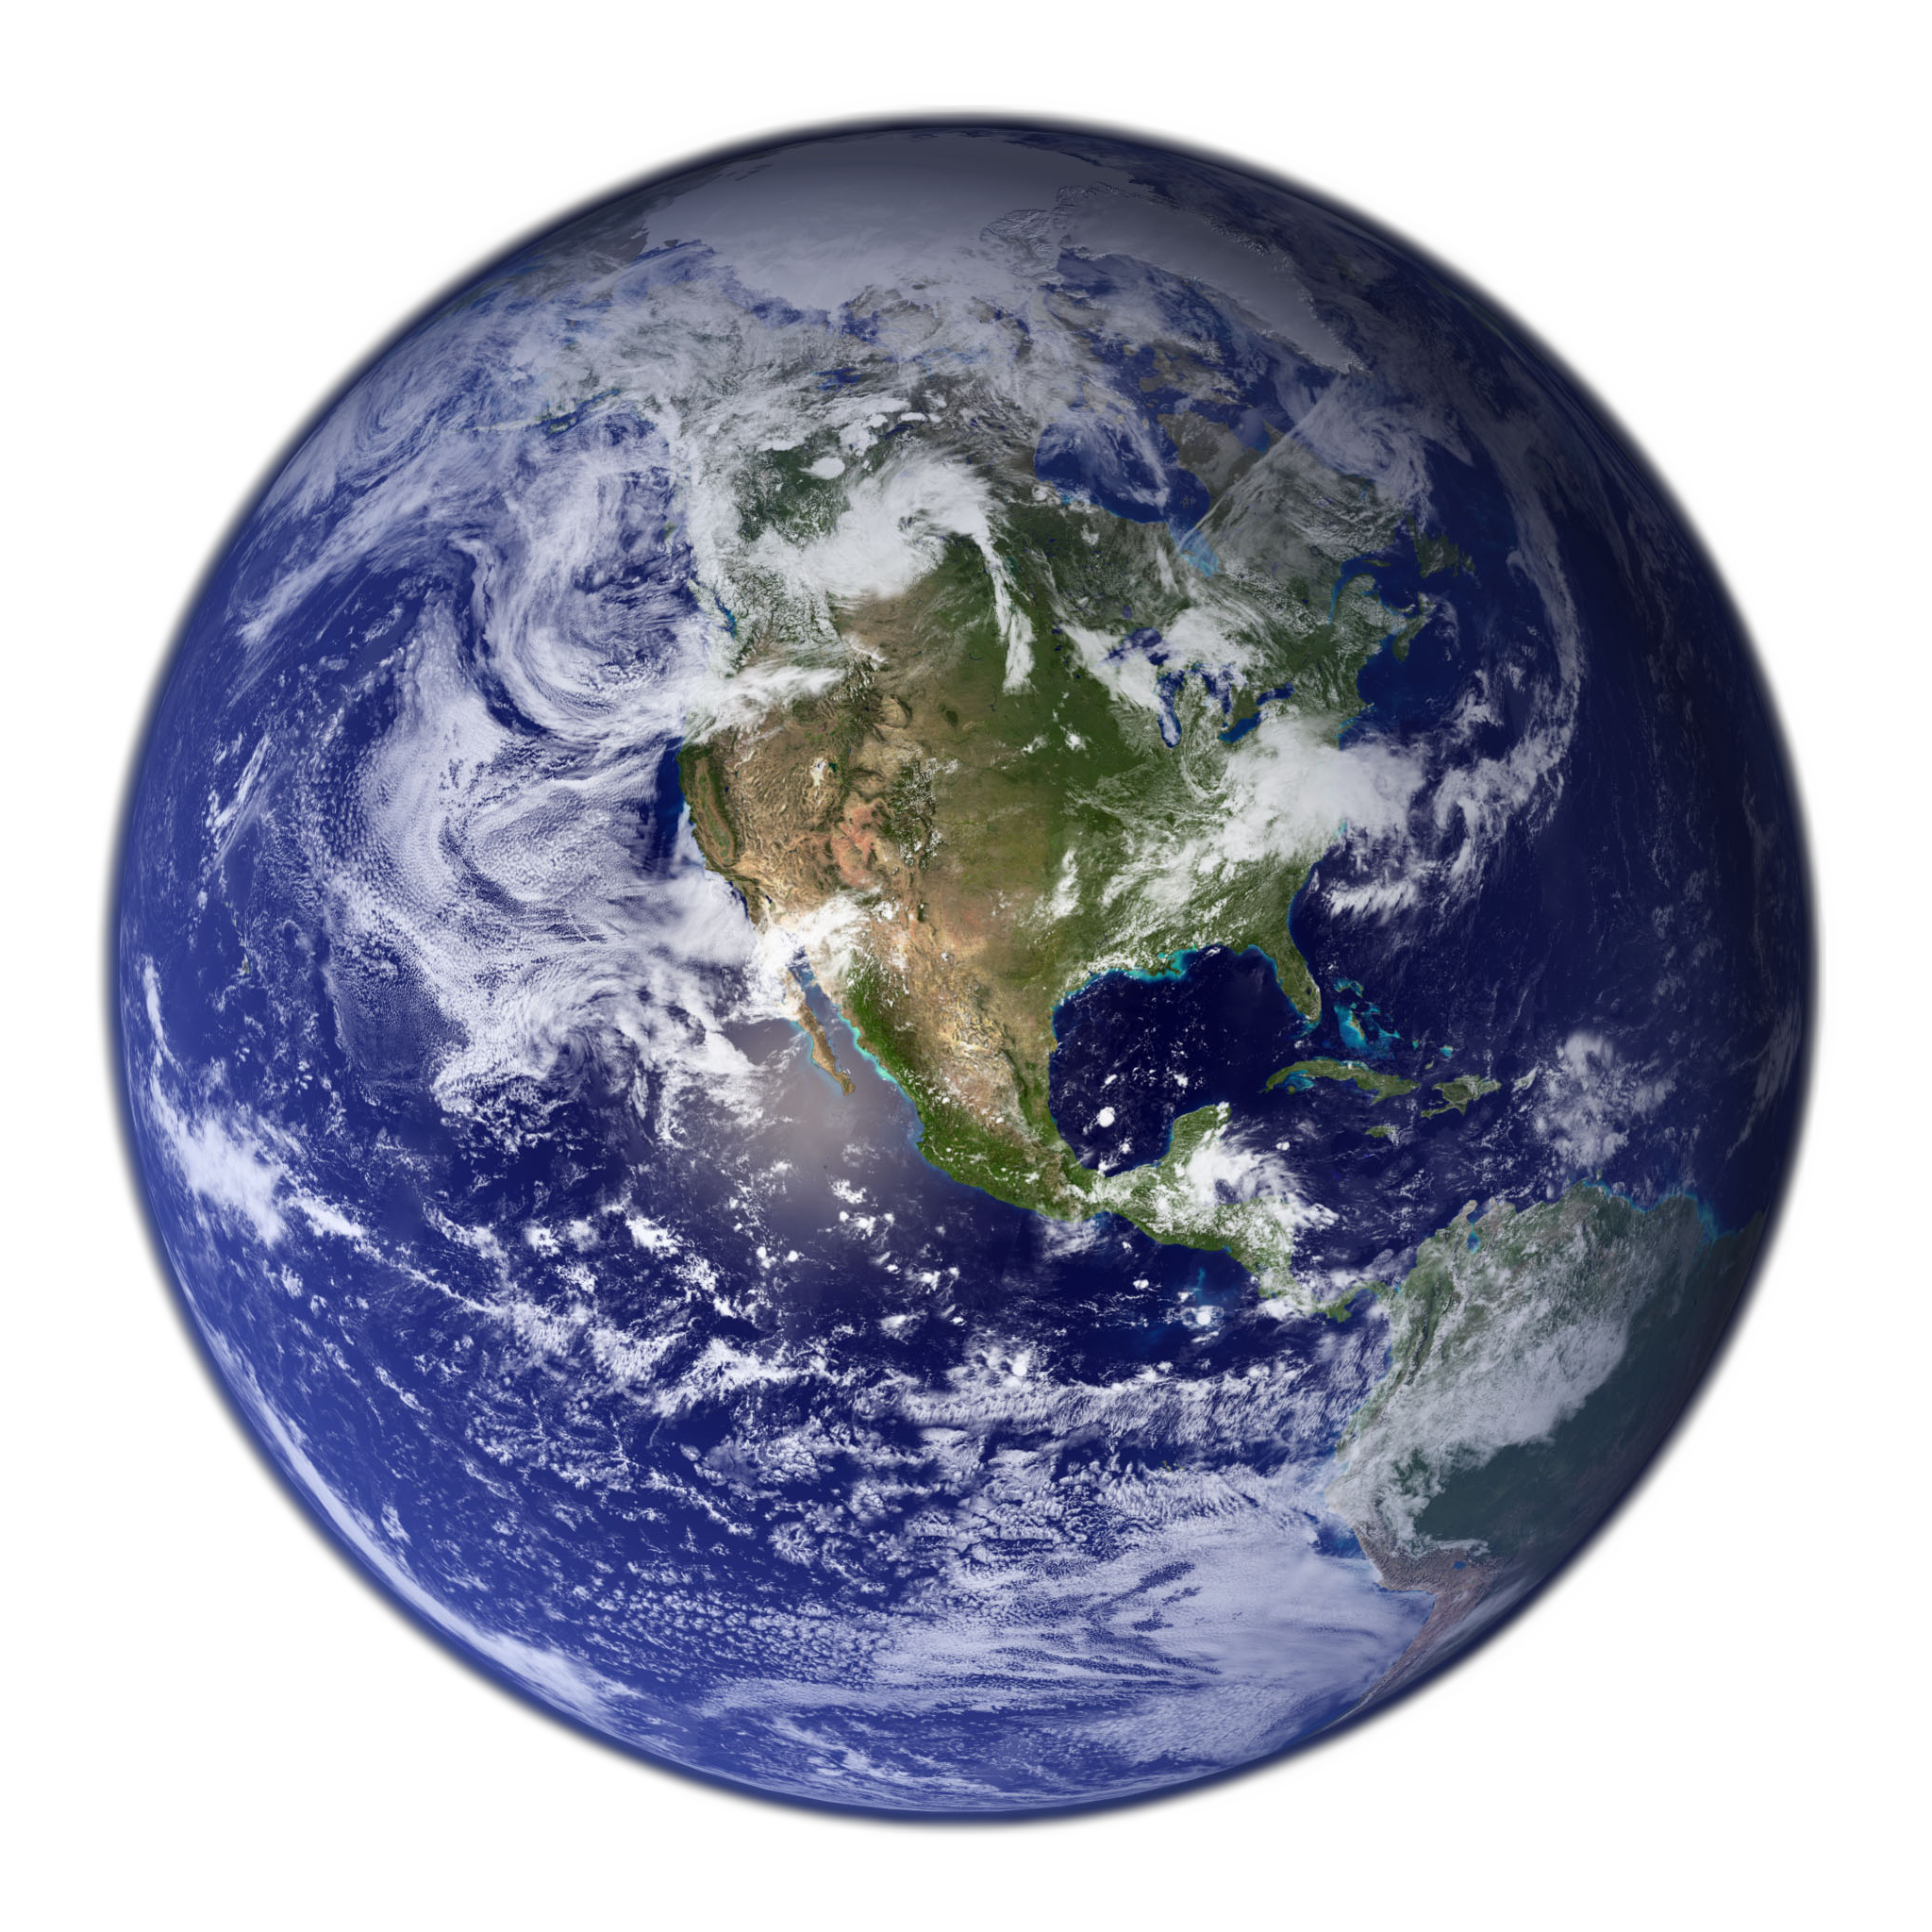 File:Earth Western Hemisphere transparent background.png.